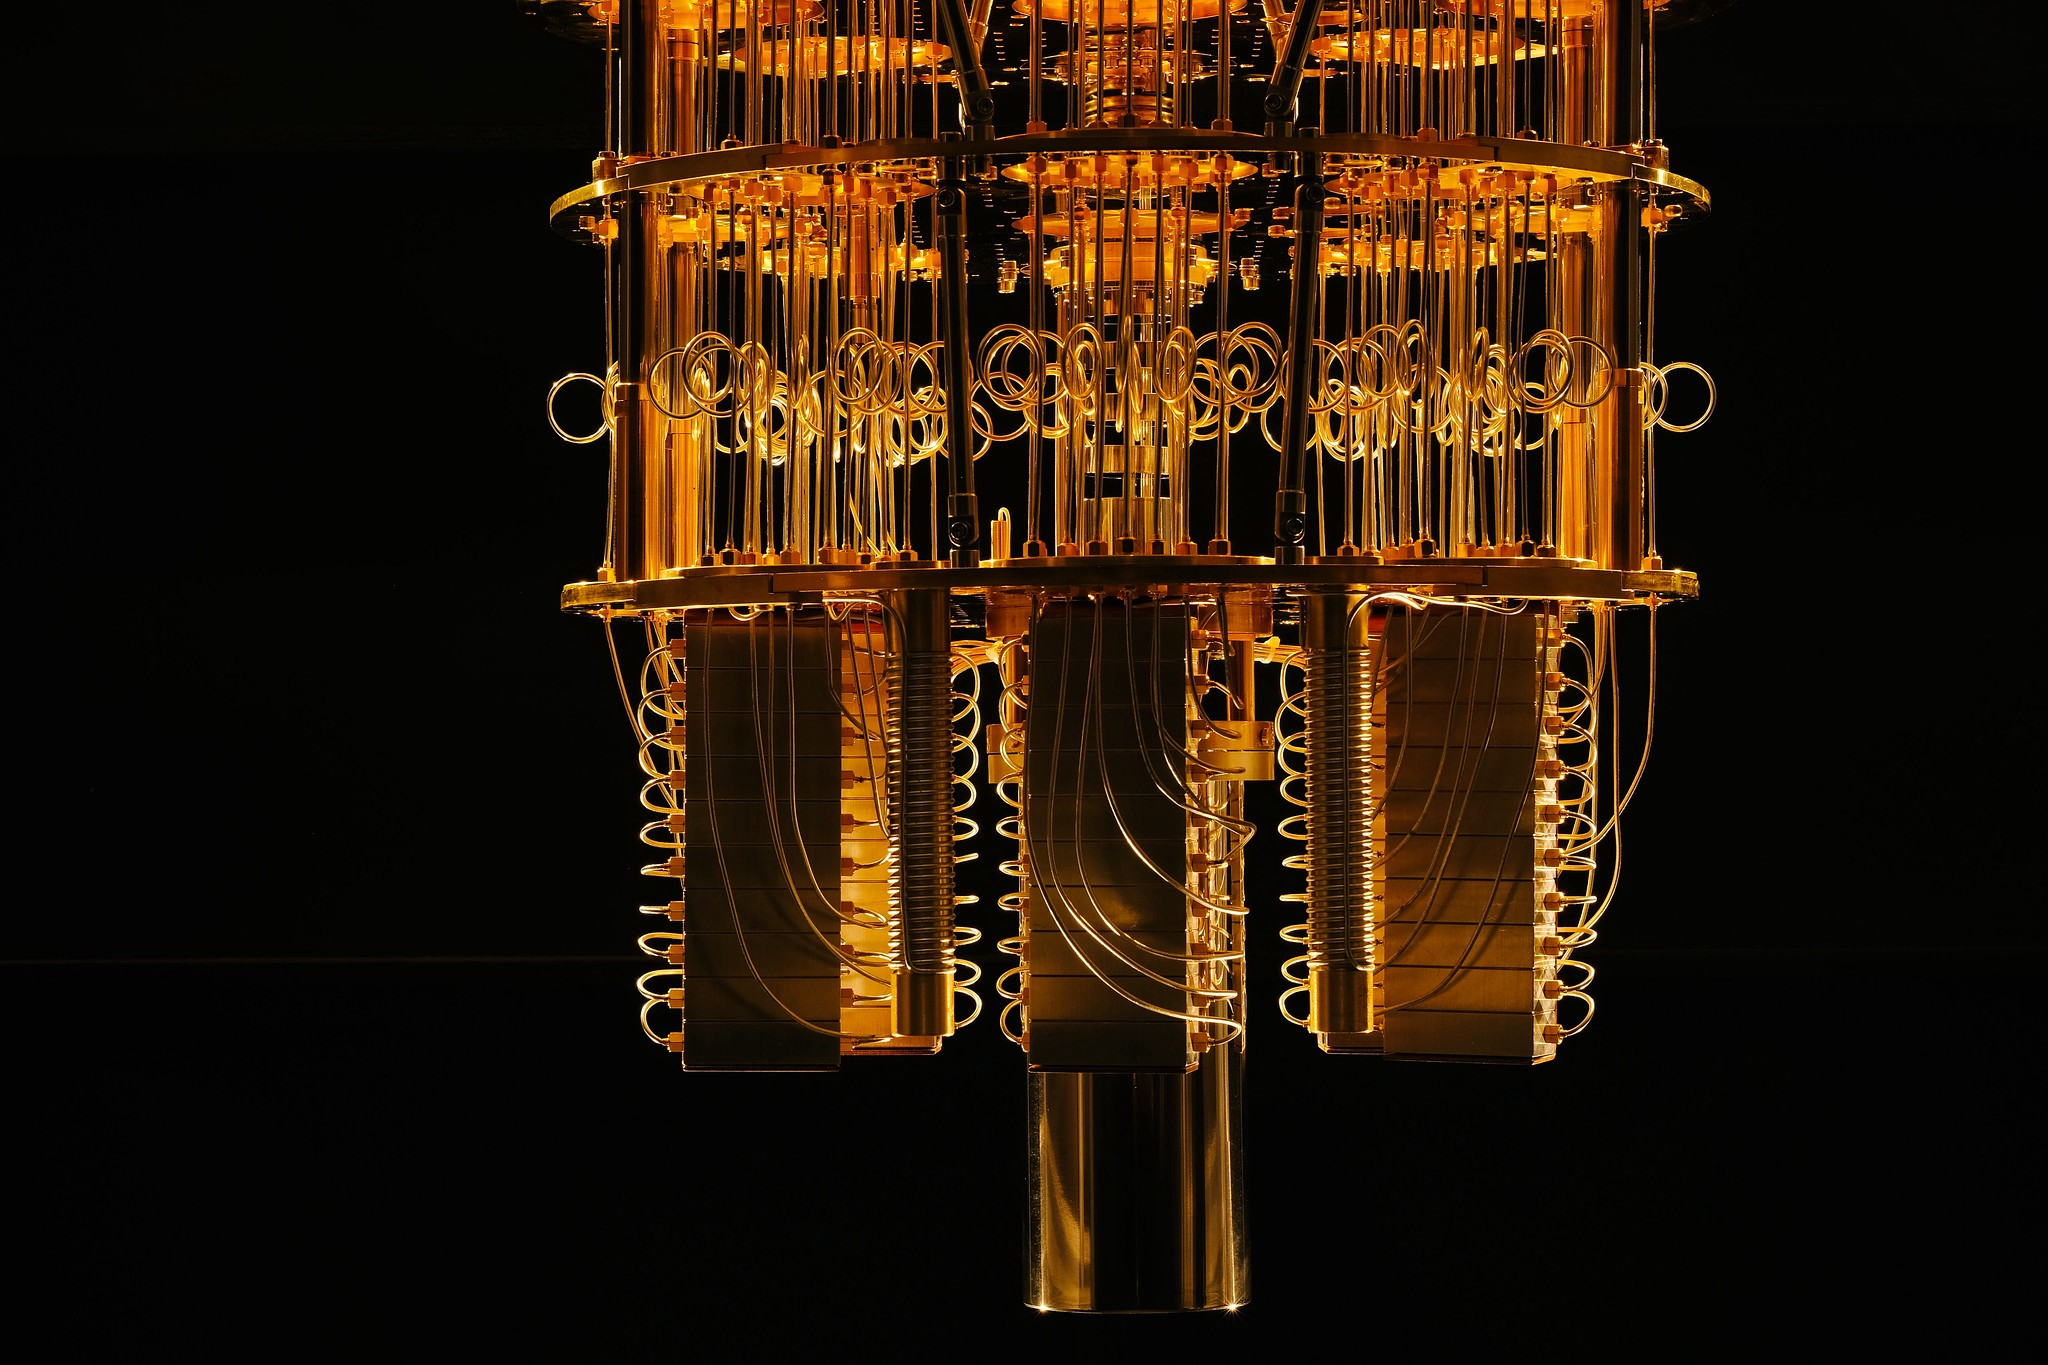 A dramatic photograph of the IBM quantum computer?s wire-filled chandelier on a black background